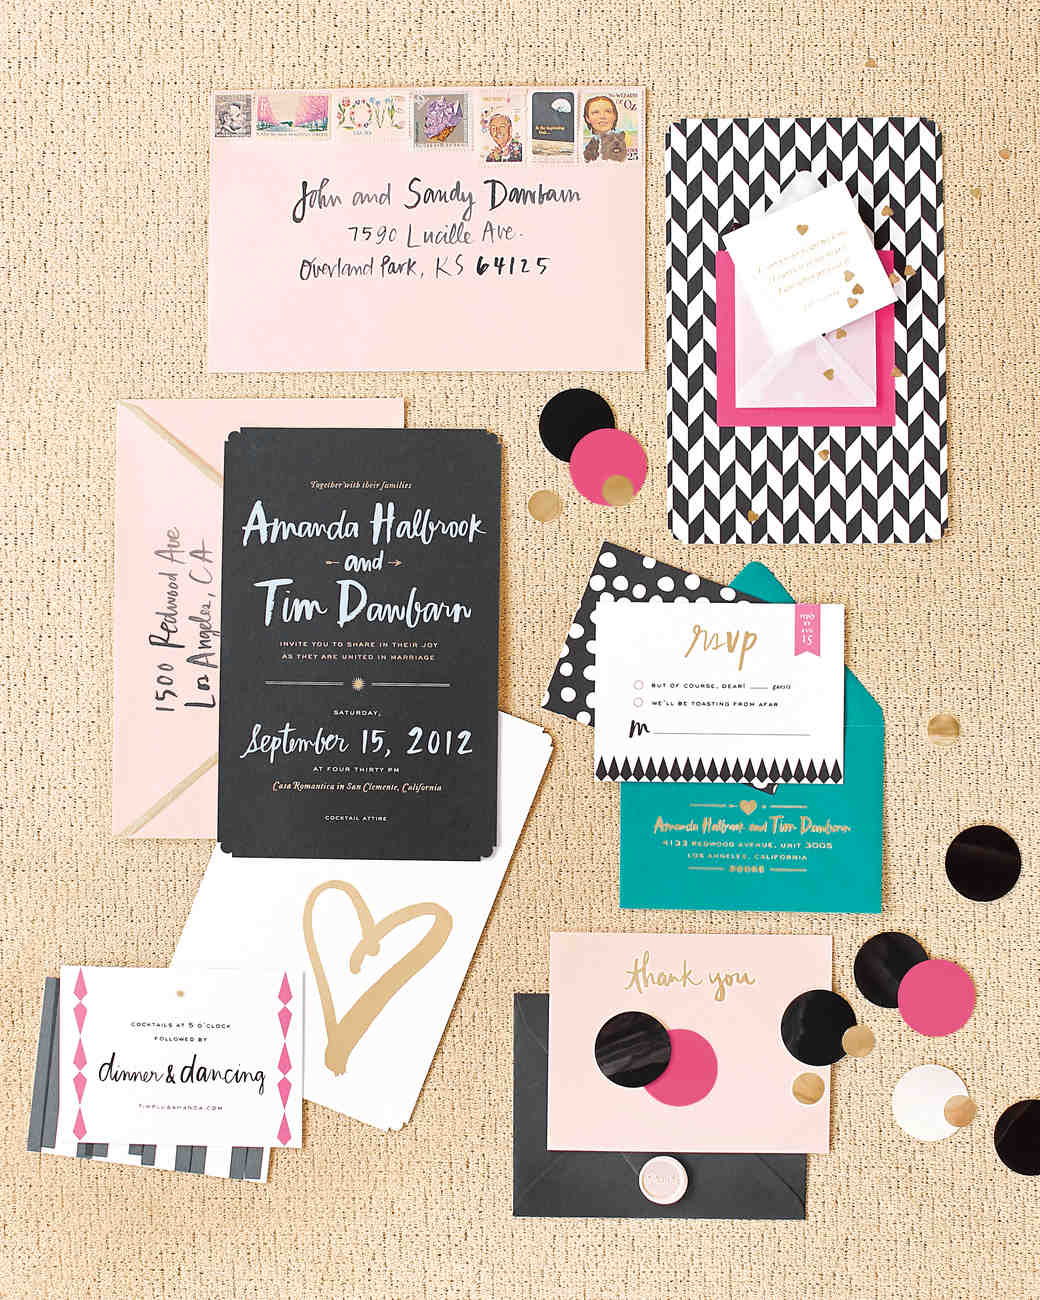 Stupendous Holiday Weekend When To Send Out Wedding Invites Be Wedding Invitation Etiquette Tips Martha Stewart When To Send Out Wedding Invitations Save Dates wedding When To Send Out Wedding Invites